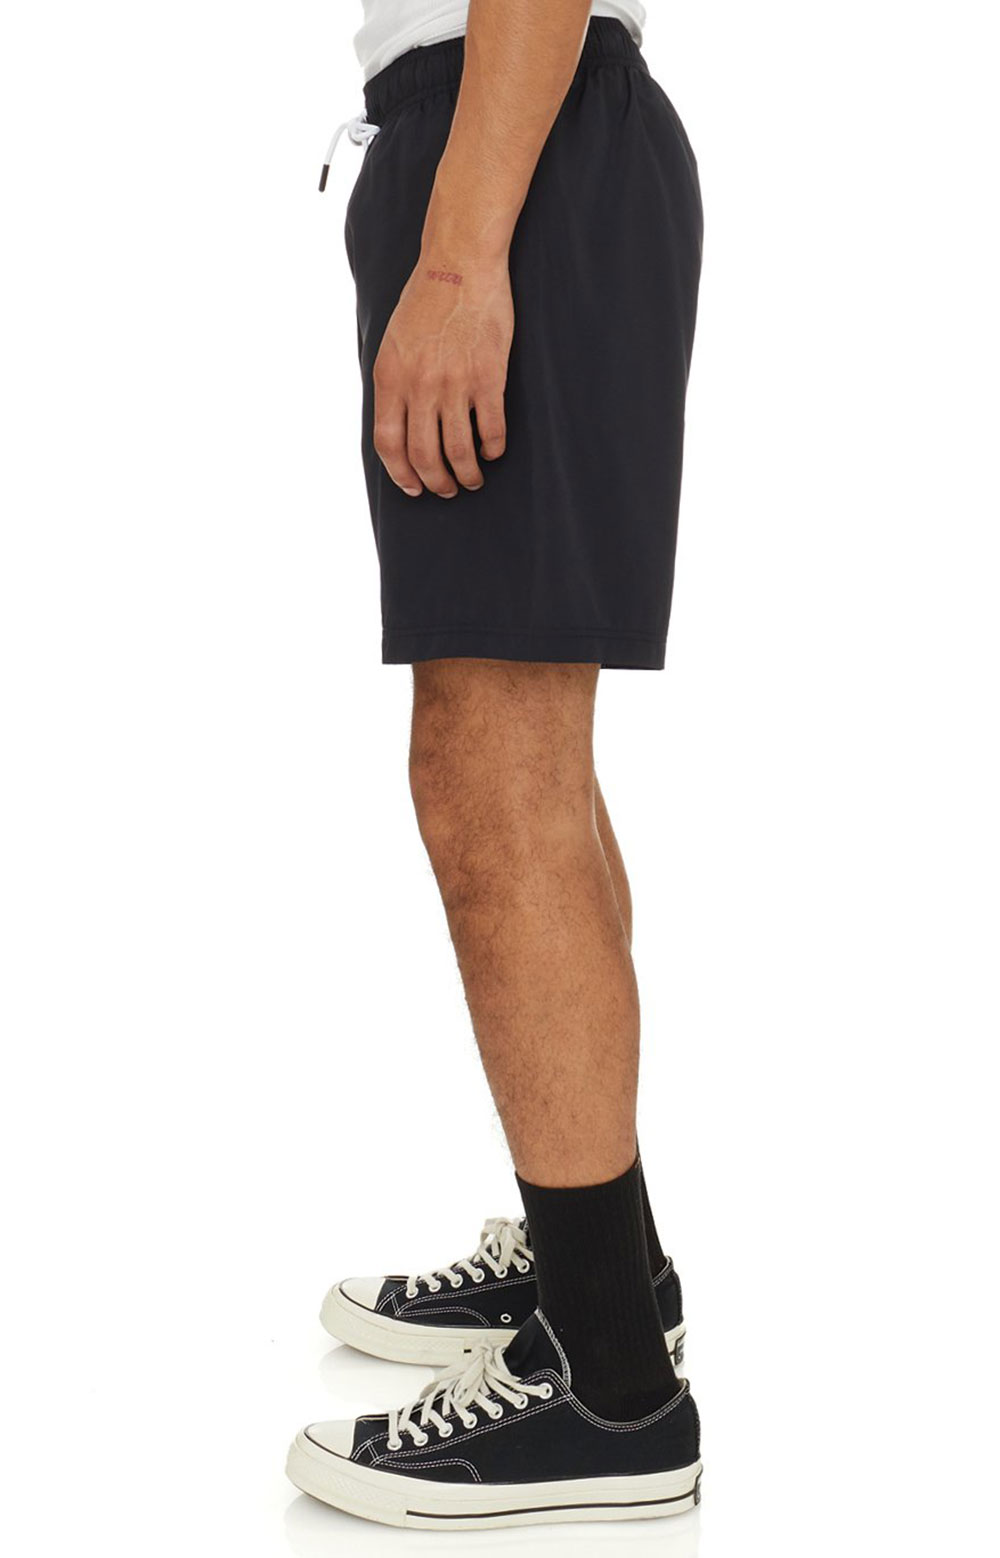 Authentic Pop Emay Shorts - Black/White  3